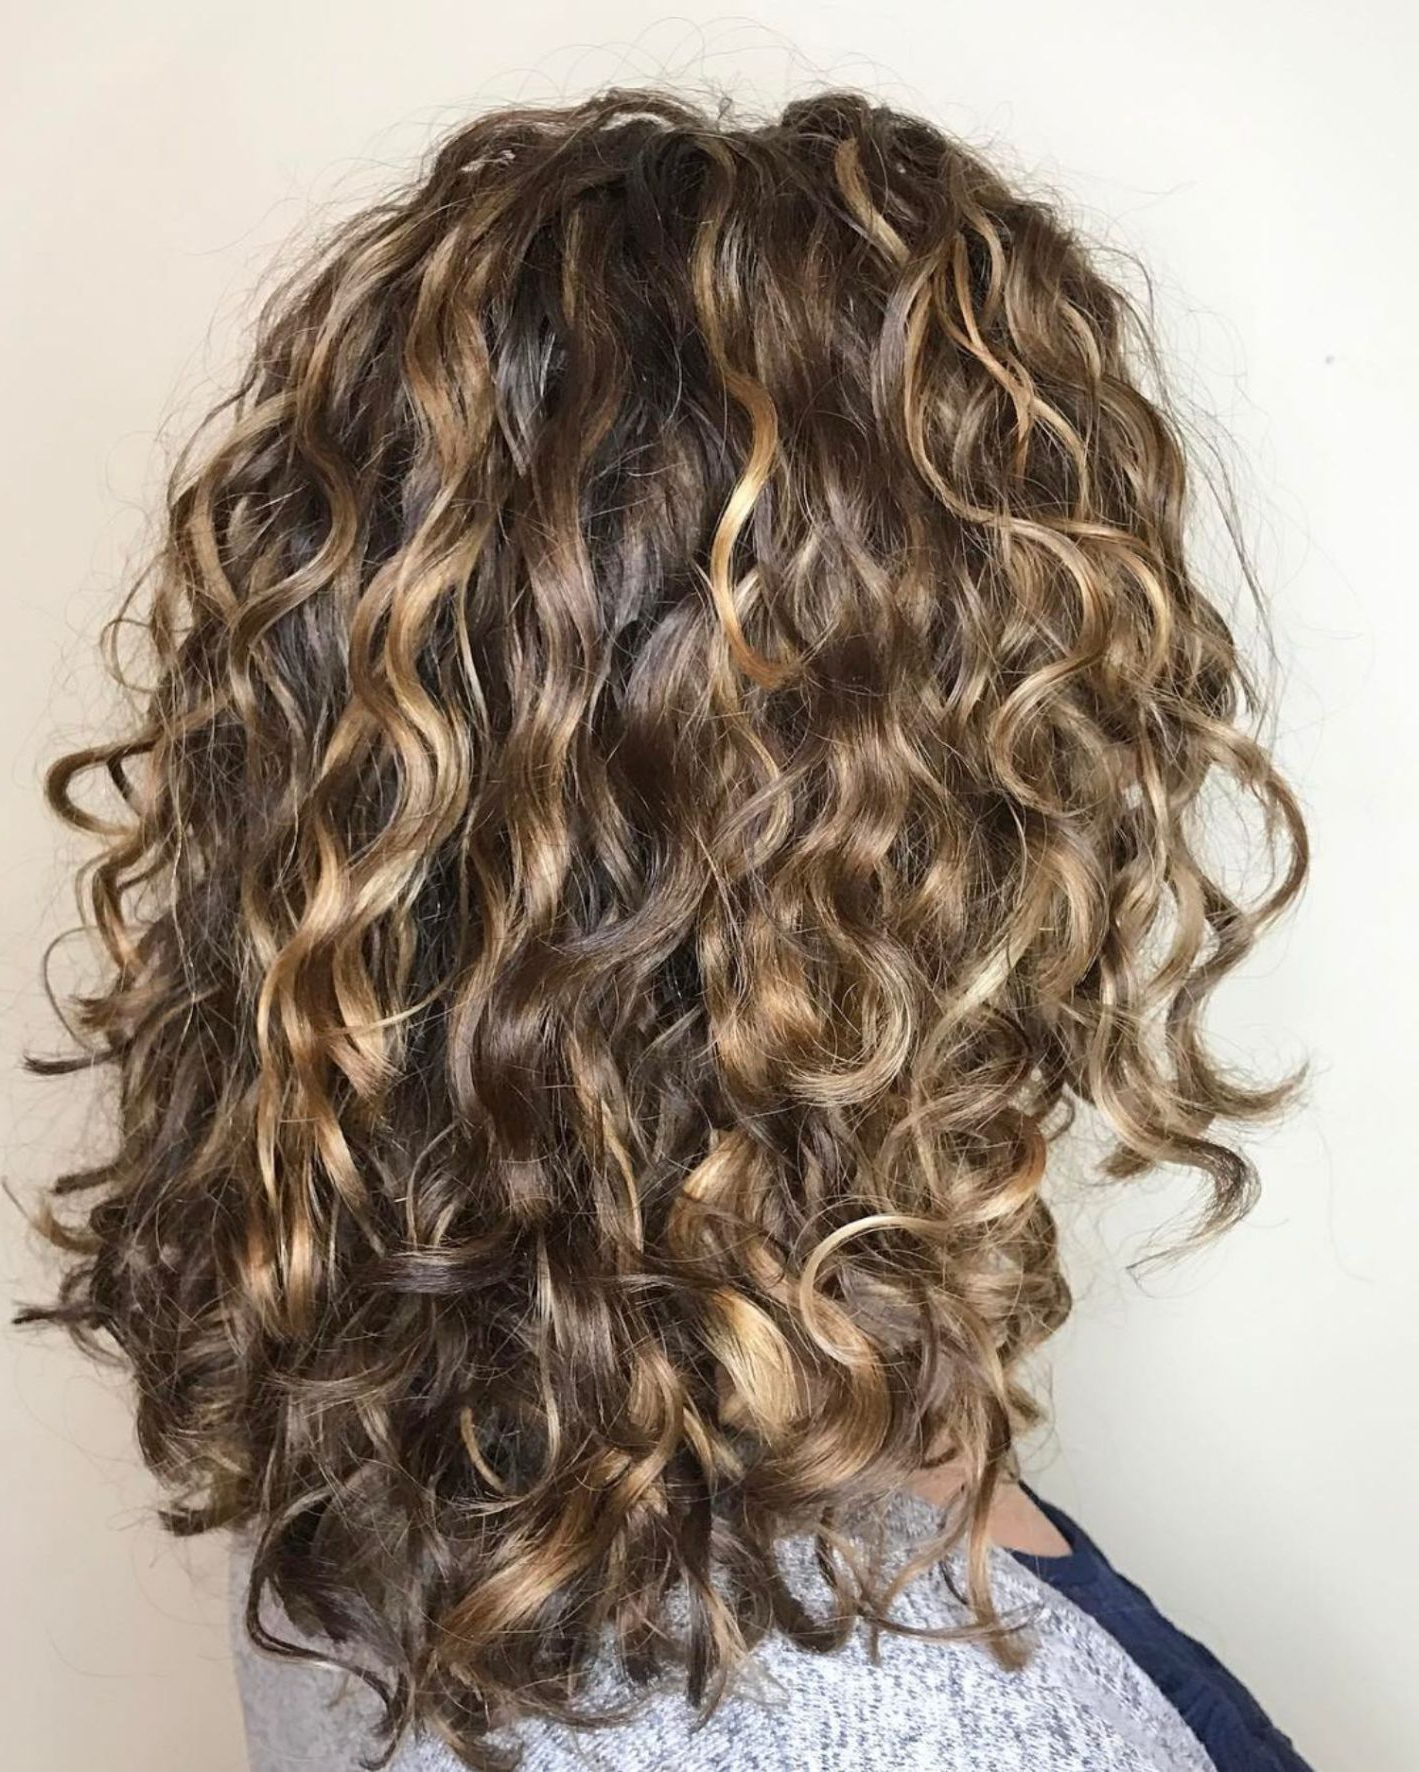 60 Styles And Cuts For Naturally Curly Hair | Hairstyles | Pinterest In Dark Blonde Short Curly Hairstyles (Gallery 3 of 25)